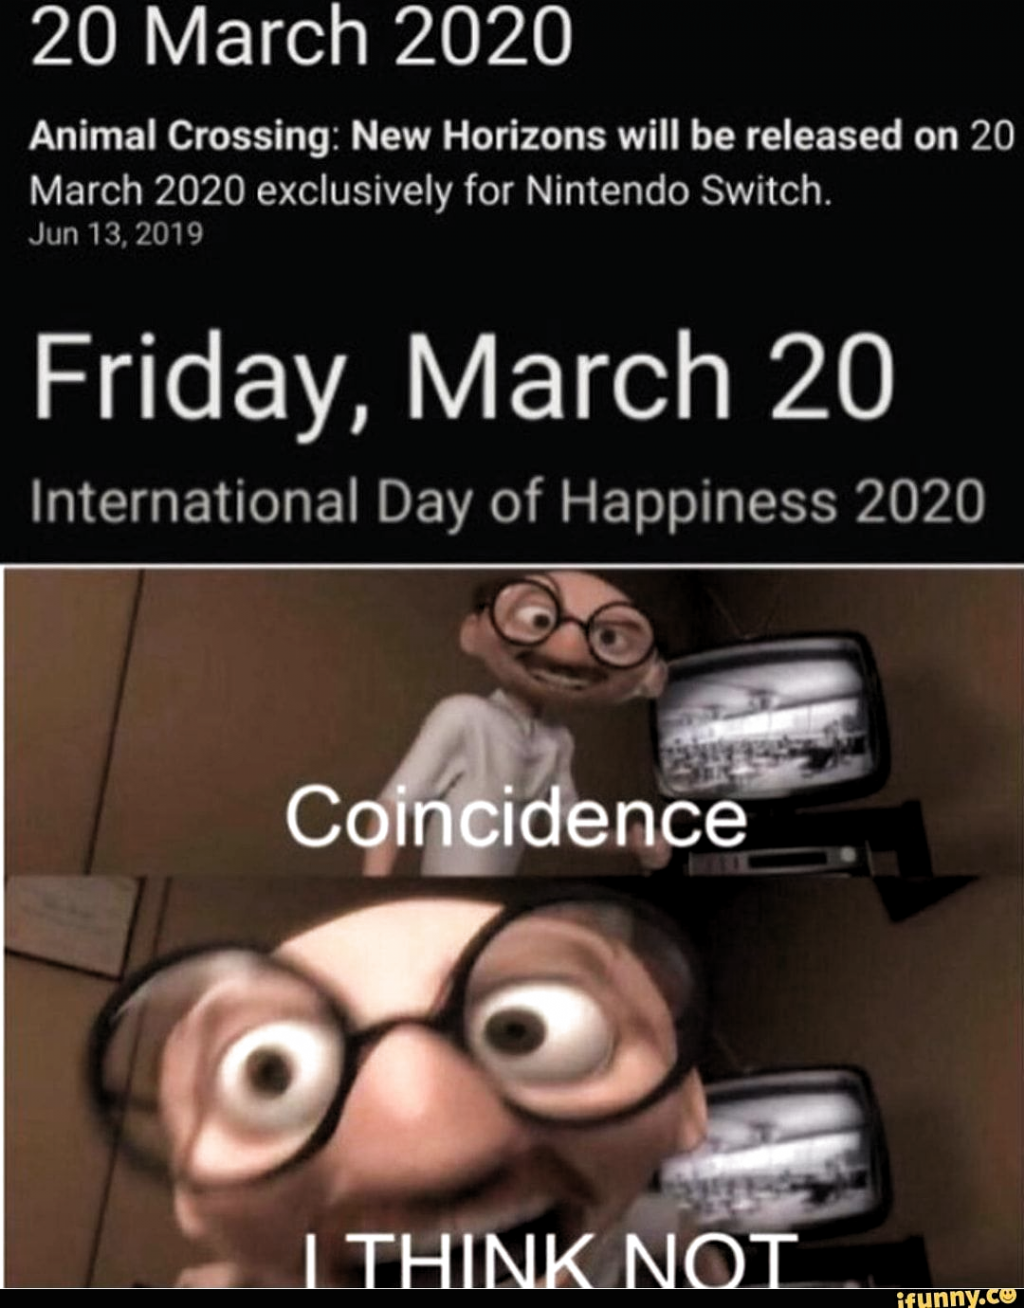 20 March 2020 Animal Crossing New Horizons Will Be Released On 20 March 2020 Exclusively For Nintendo Switch Jun 13 2019 Friday Marc Komiker Memes Nintendo